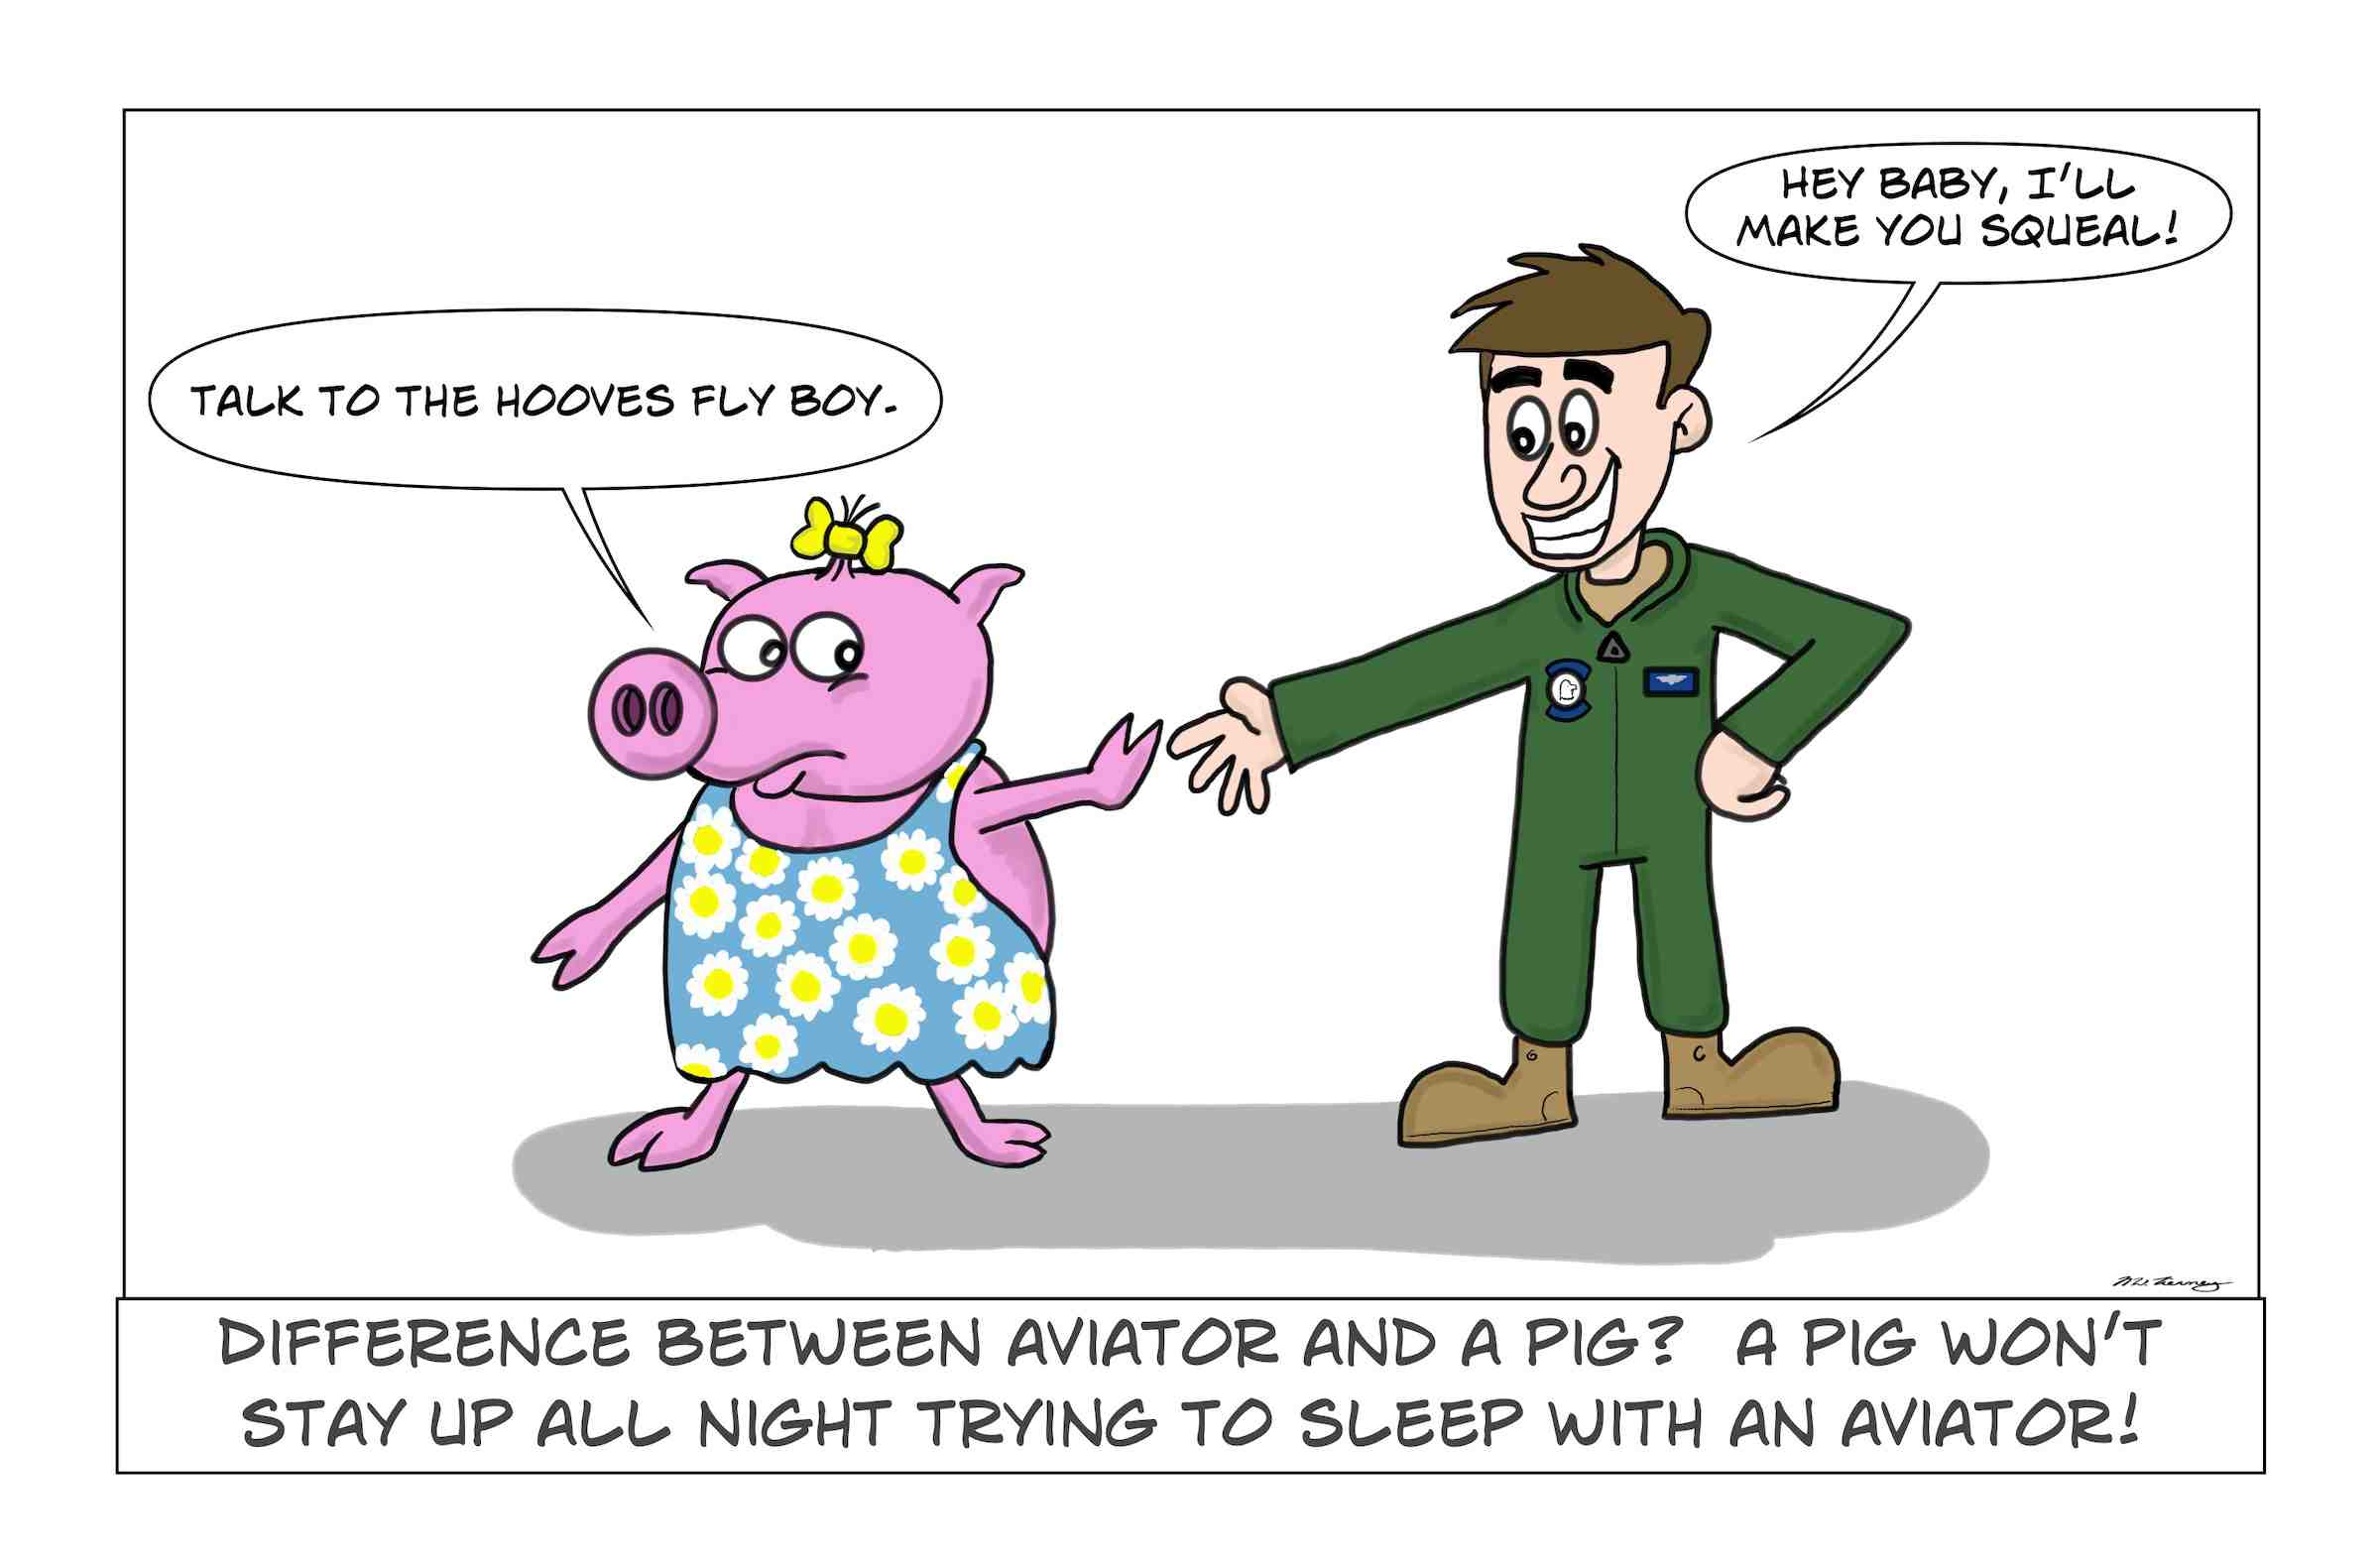 A pilot wants to make love to a pig and will stop at nothing to do so.